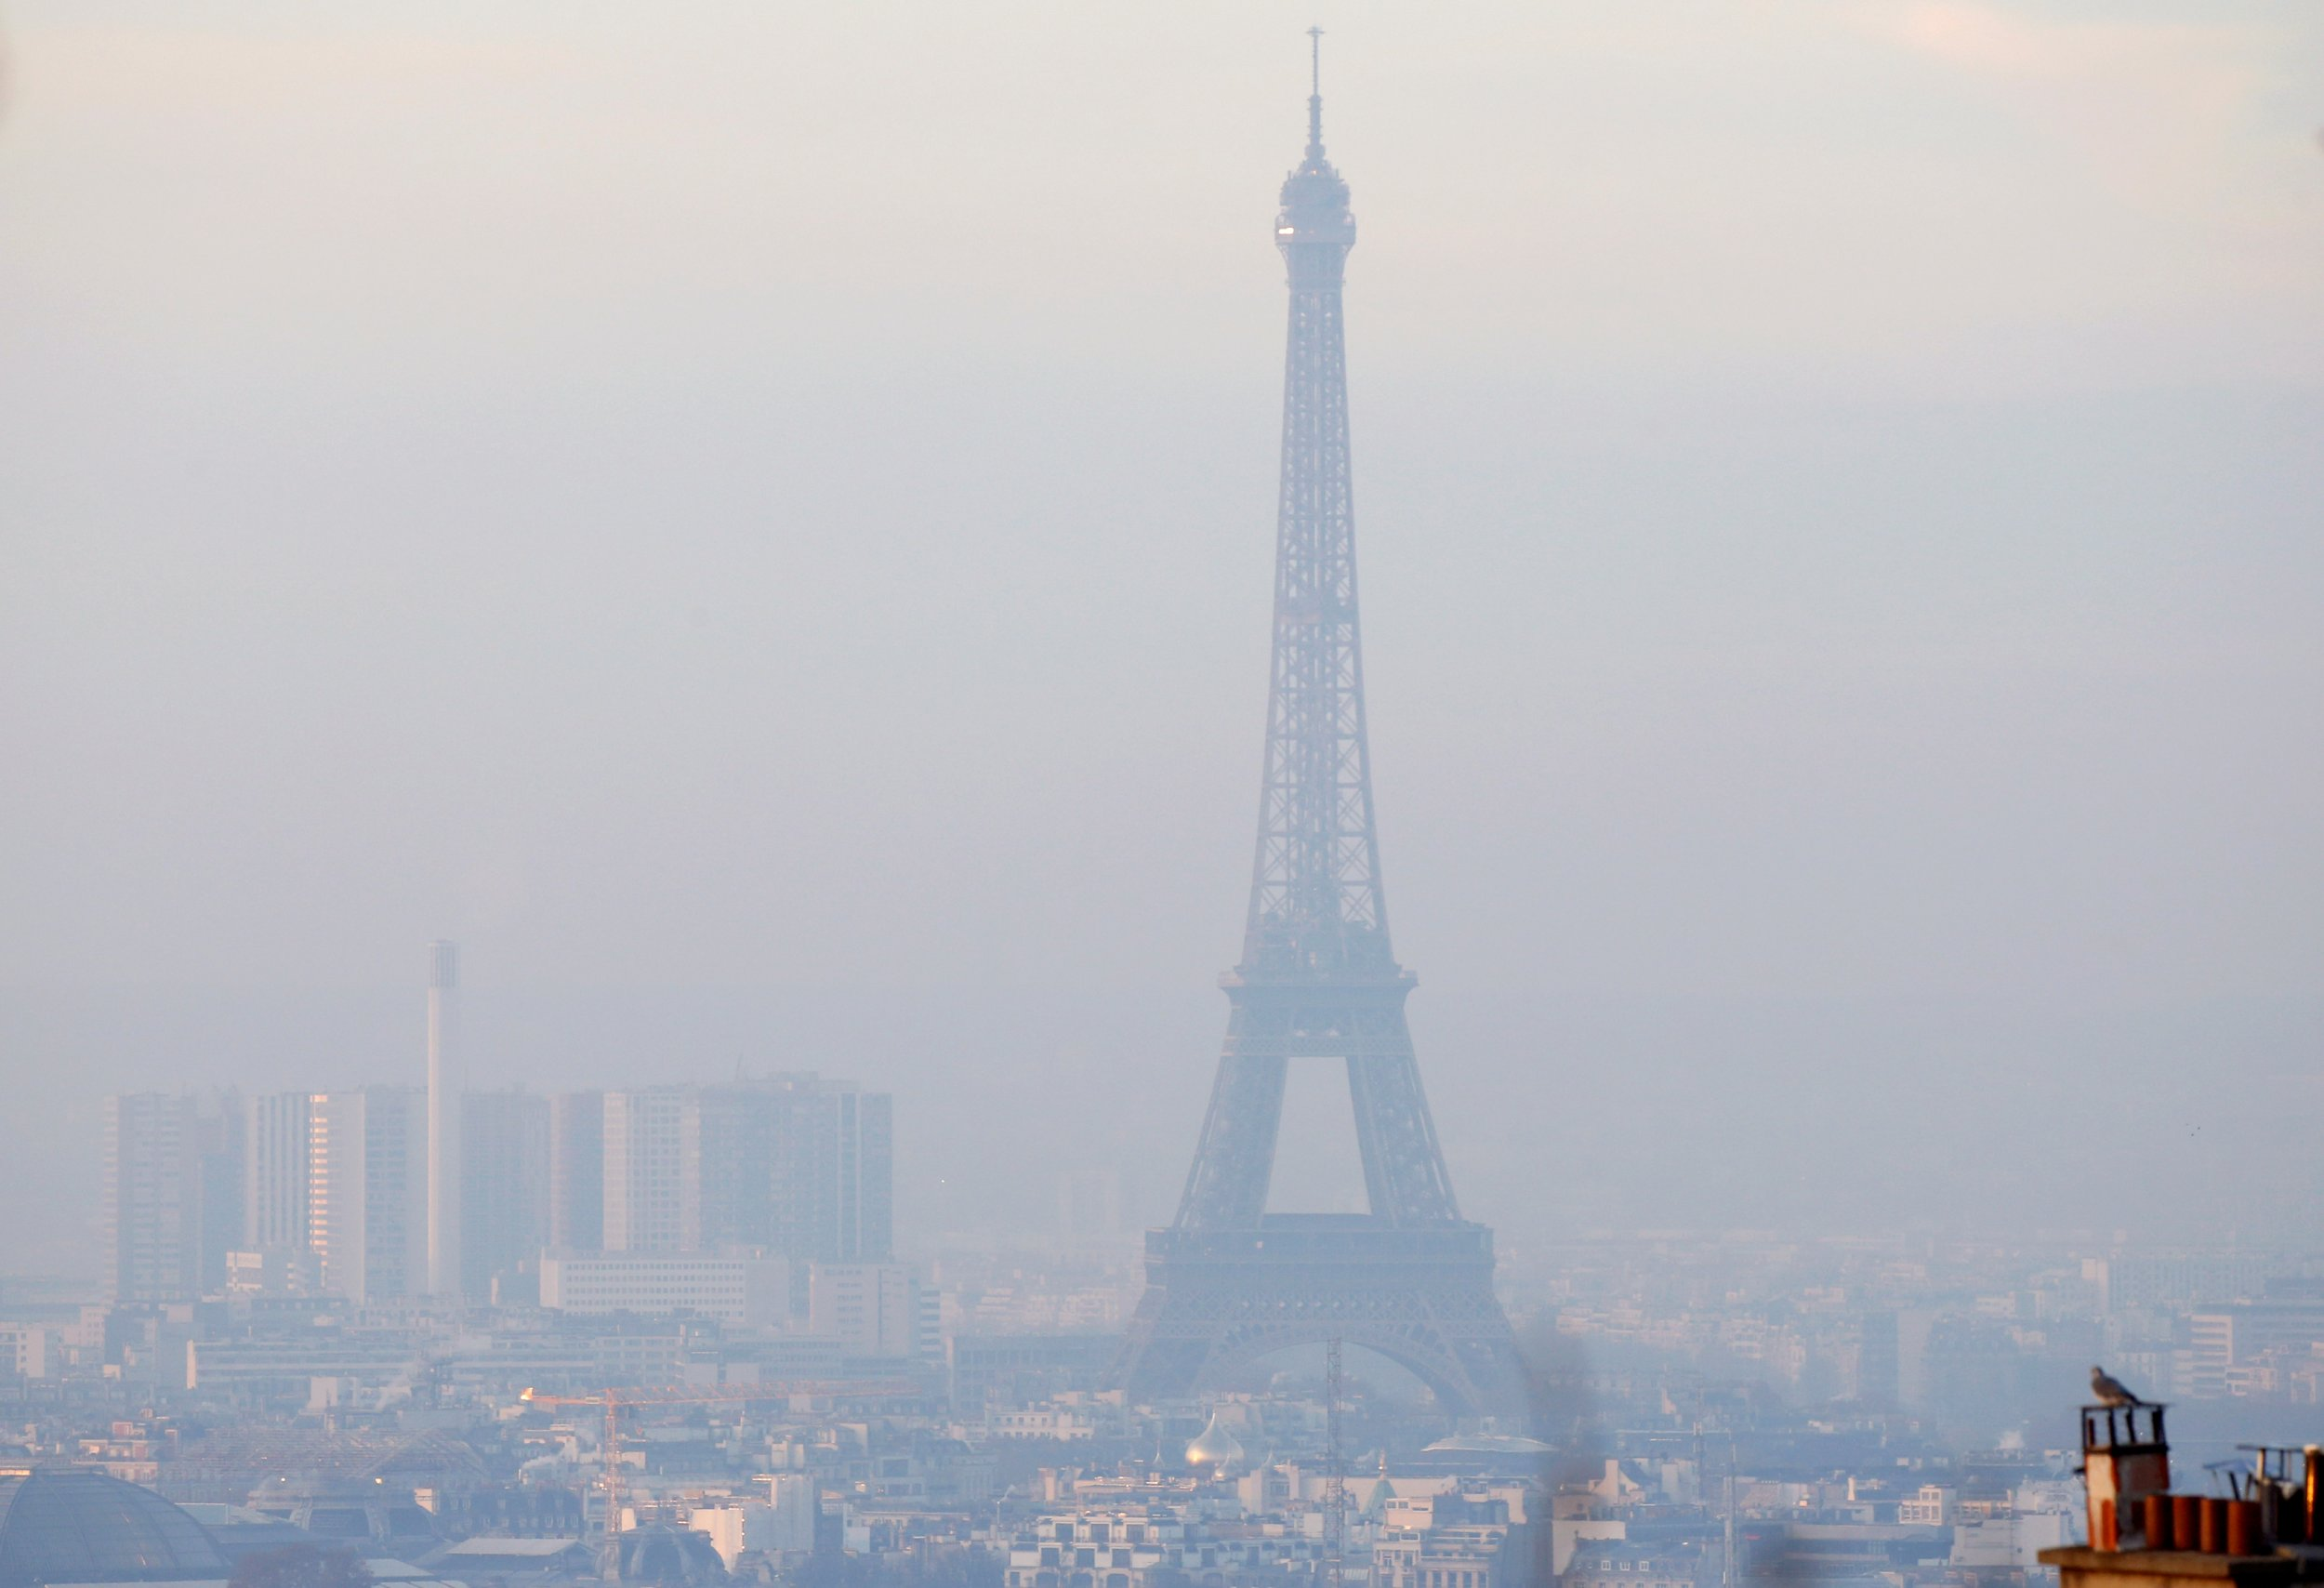 12_20_Paris_Pollution_01